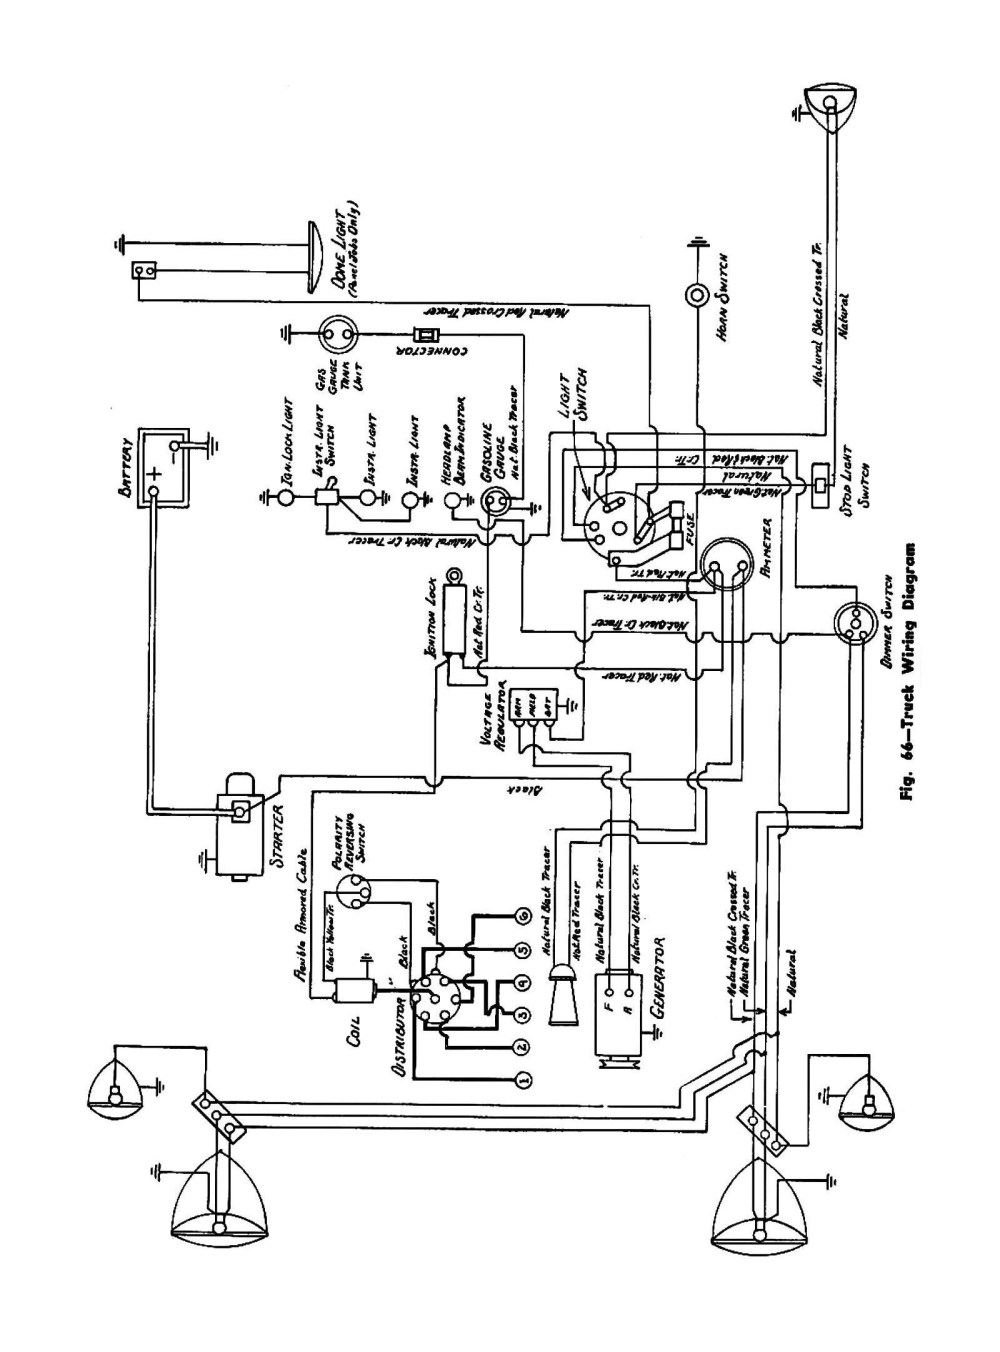 medium resolution of 52 chevy pickup wiring diagram wiring diagram for you wiring diagram 96 chevy 1500 pickup 1954